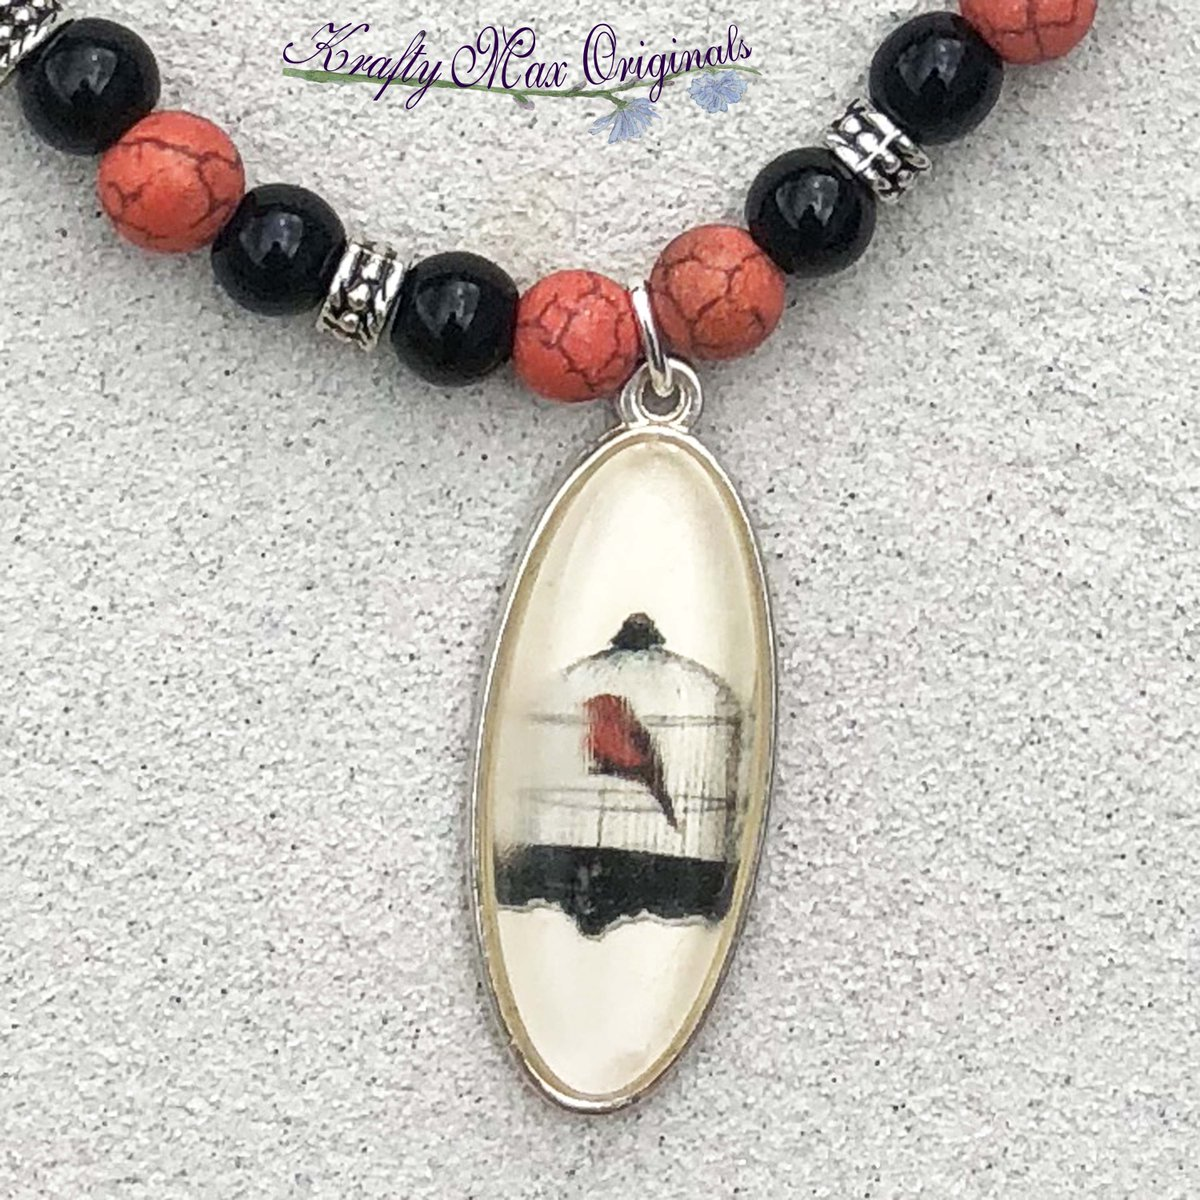 Red and Black Bird and Cage Necklace Set from Grandmothers Stash $23  #handmade #jewelry #supporthandmade #buyhandmade #handmadelove #jewelrydesigner #jewelryart #uniquejewelry #handcrafted #kraftymax #kmax